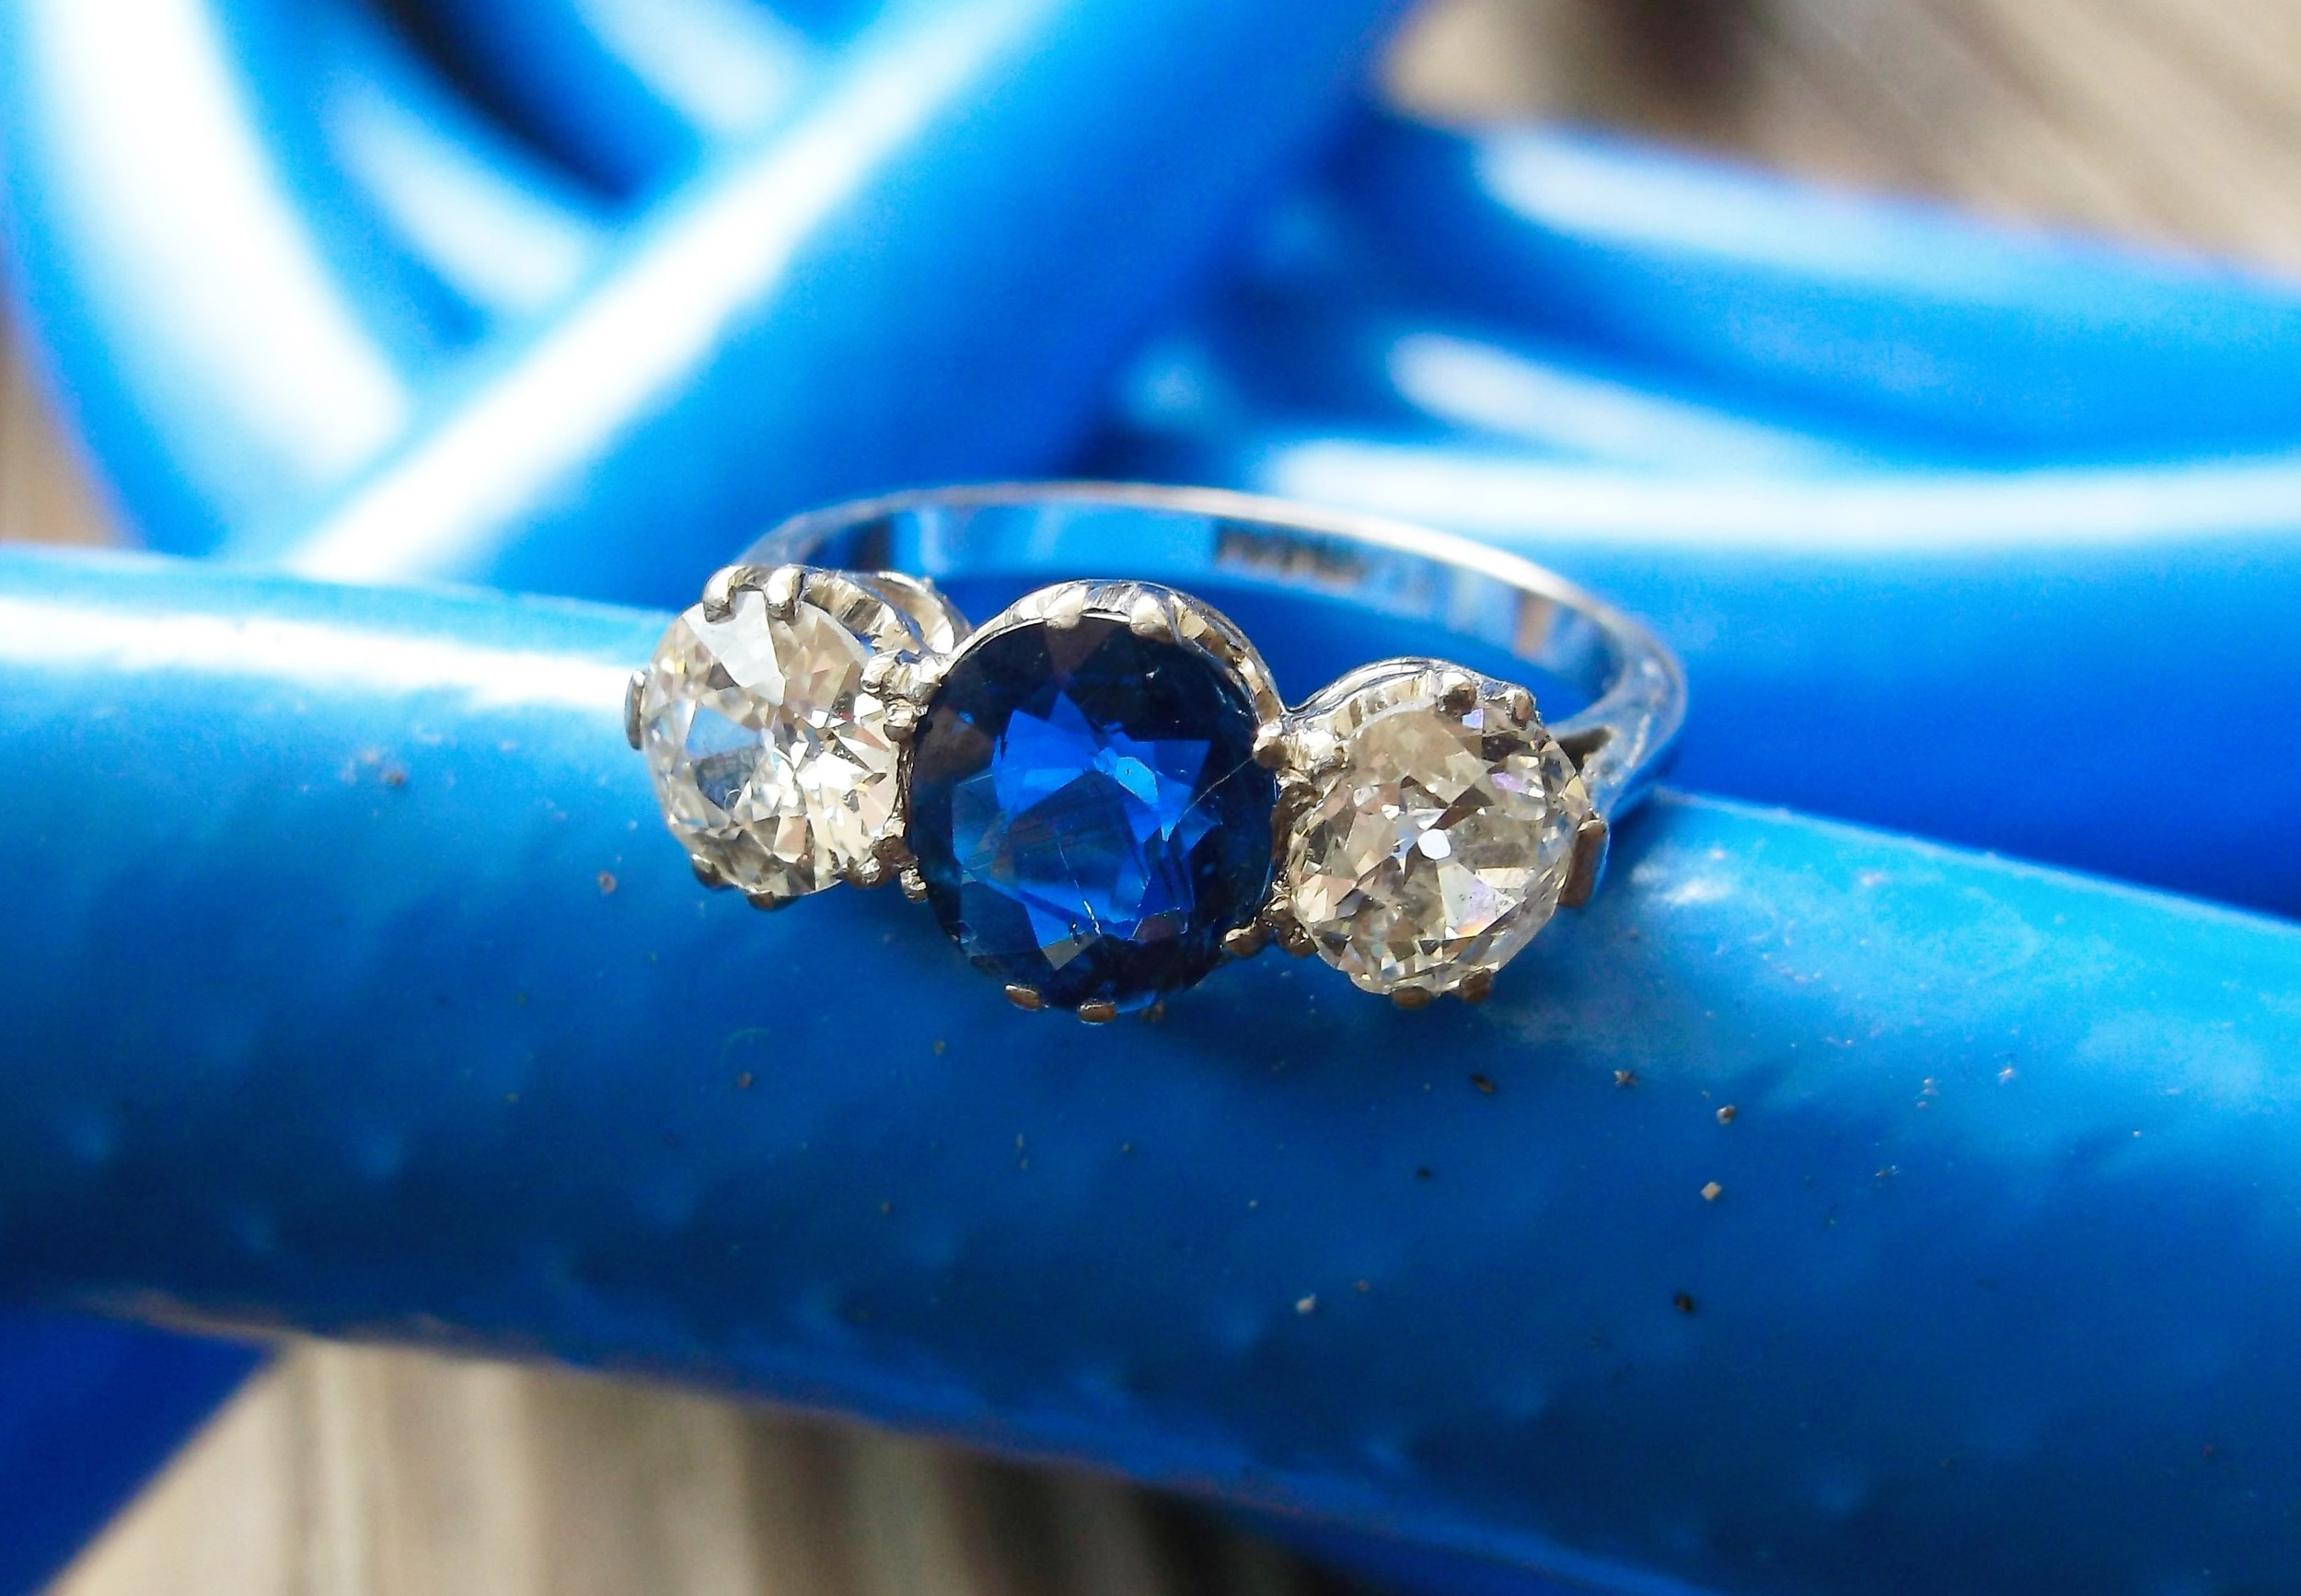 SOLD - Boldly beautiful 1920's diamond and sapphire ring with a 1.24 carat blue sapphire in the center and a 0.55 carat Old Mine cut diamond on each side.